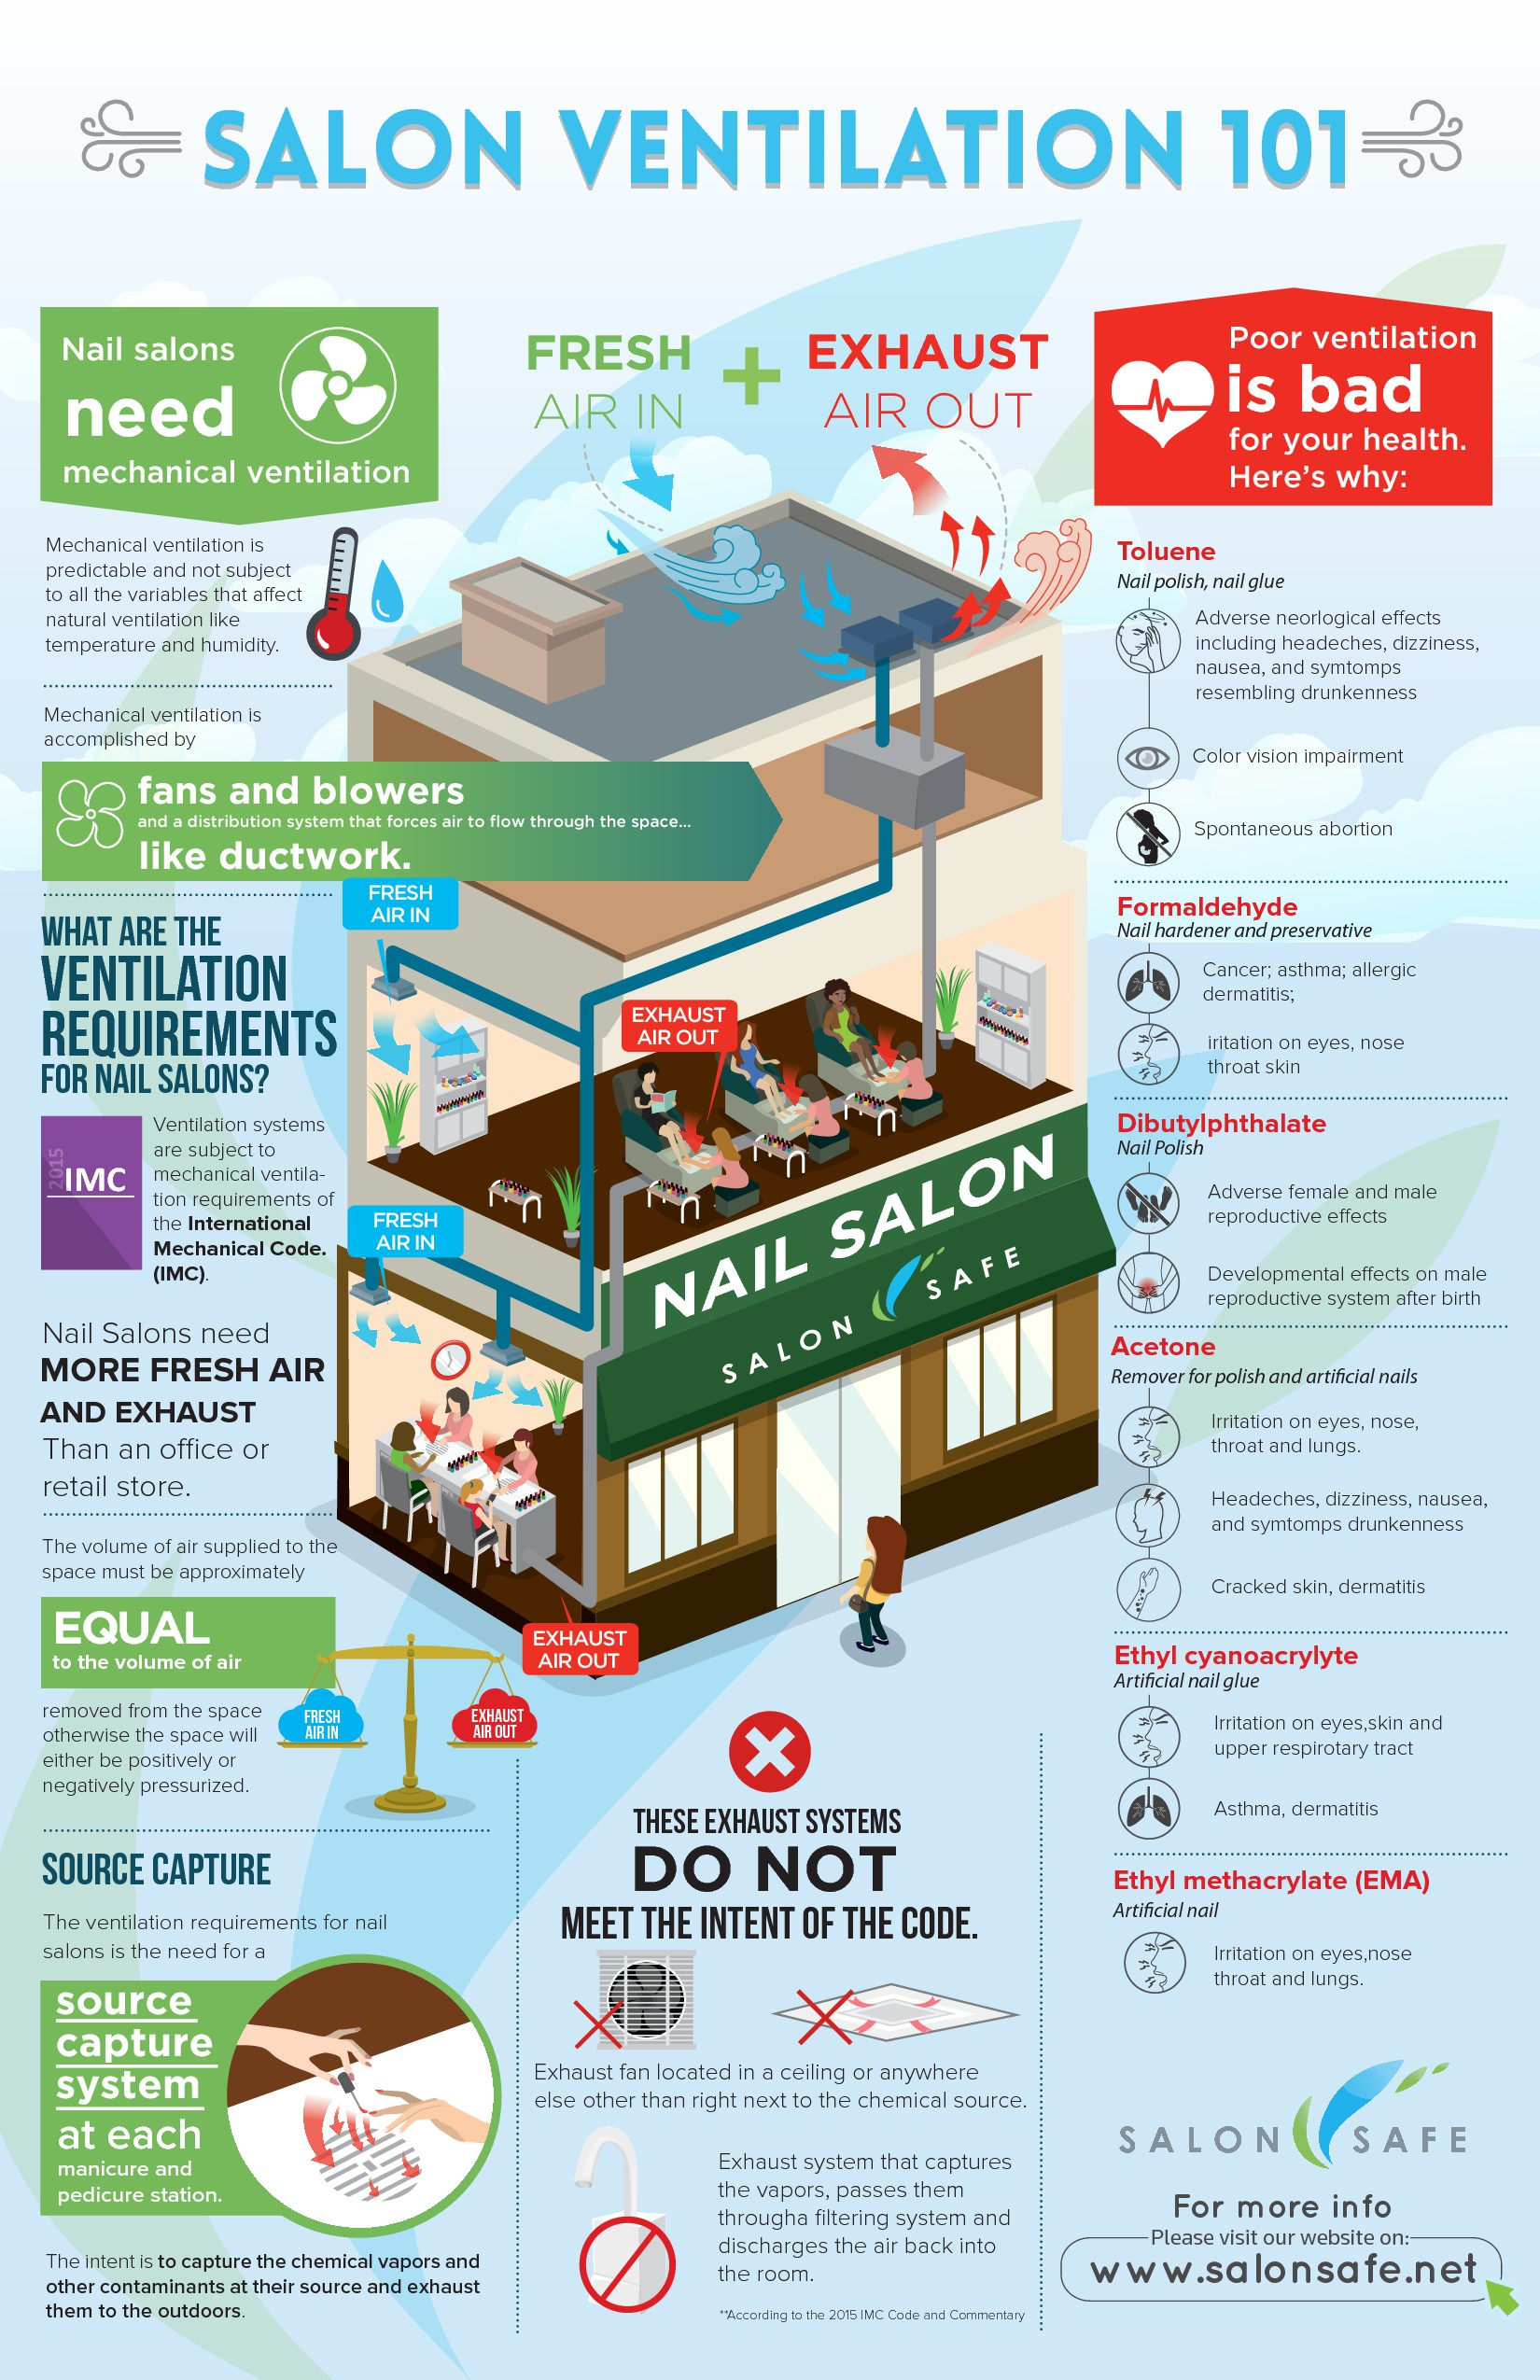 Design a fun infographic that simply explains the technical topic of Salon Ventilation